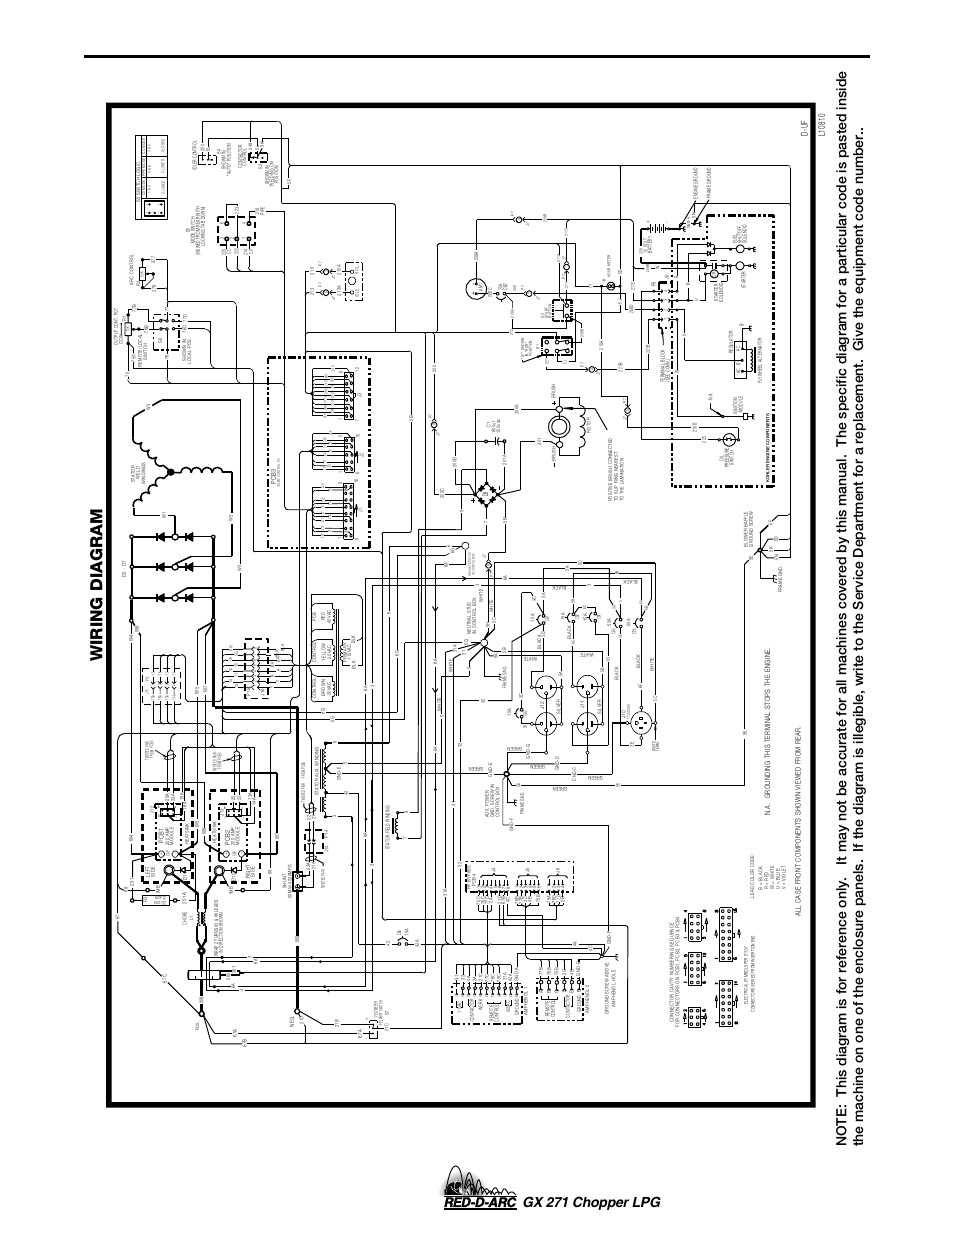 lincoln electric im635 red d arc gx 271chopper lpg page44 xo vision wiring diagram xo vision wiring diagram at webbmarketing.co